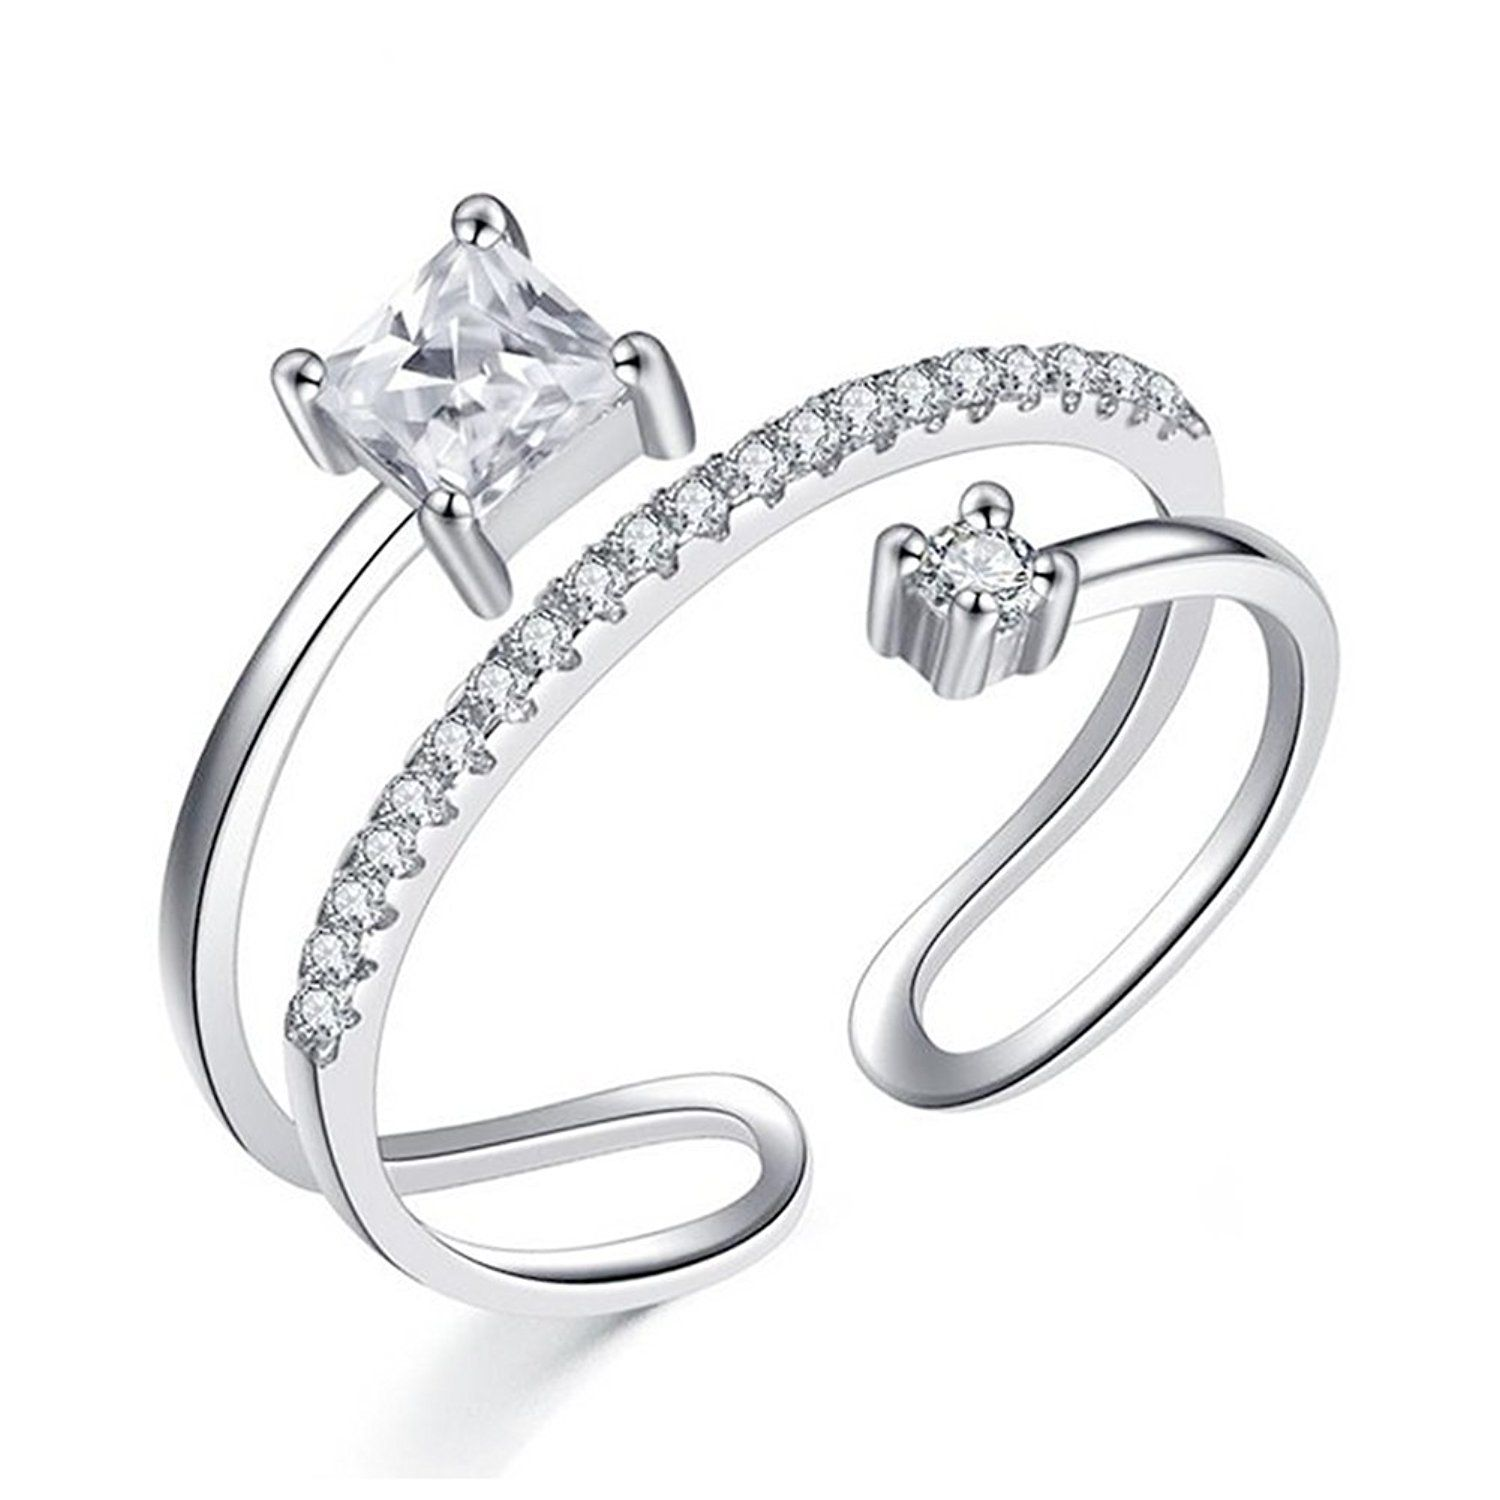 QUKE 925 Sterling Silver 3D Butterfly Adjustable Band Ring Sizes From L 1/2 to R 1/2 Fashion Women Jewellery a4rRfJHYkD